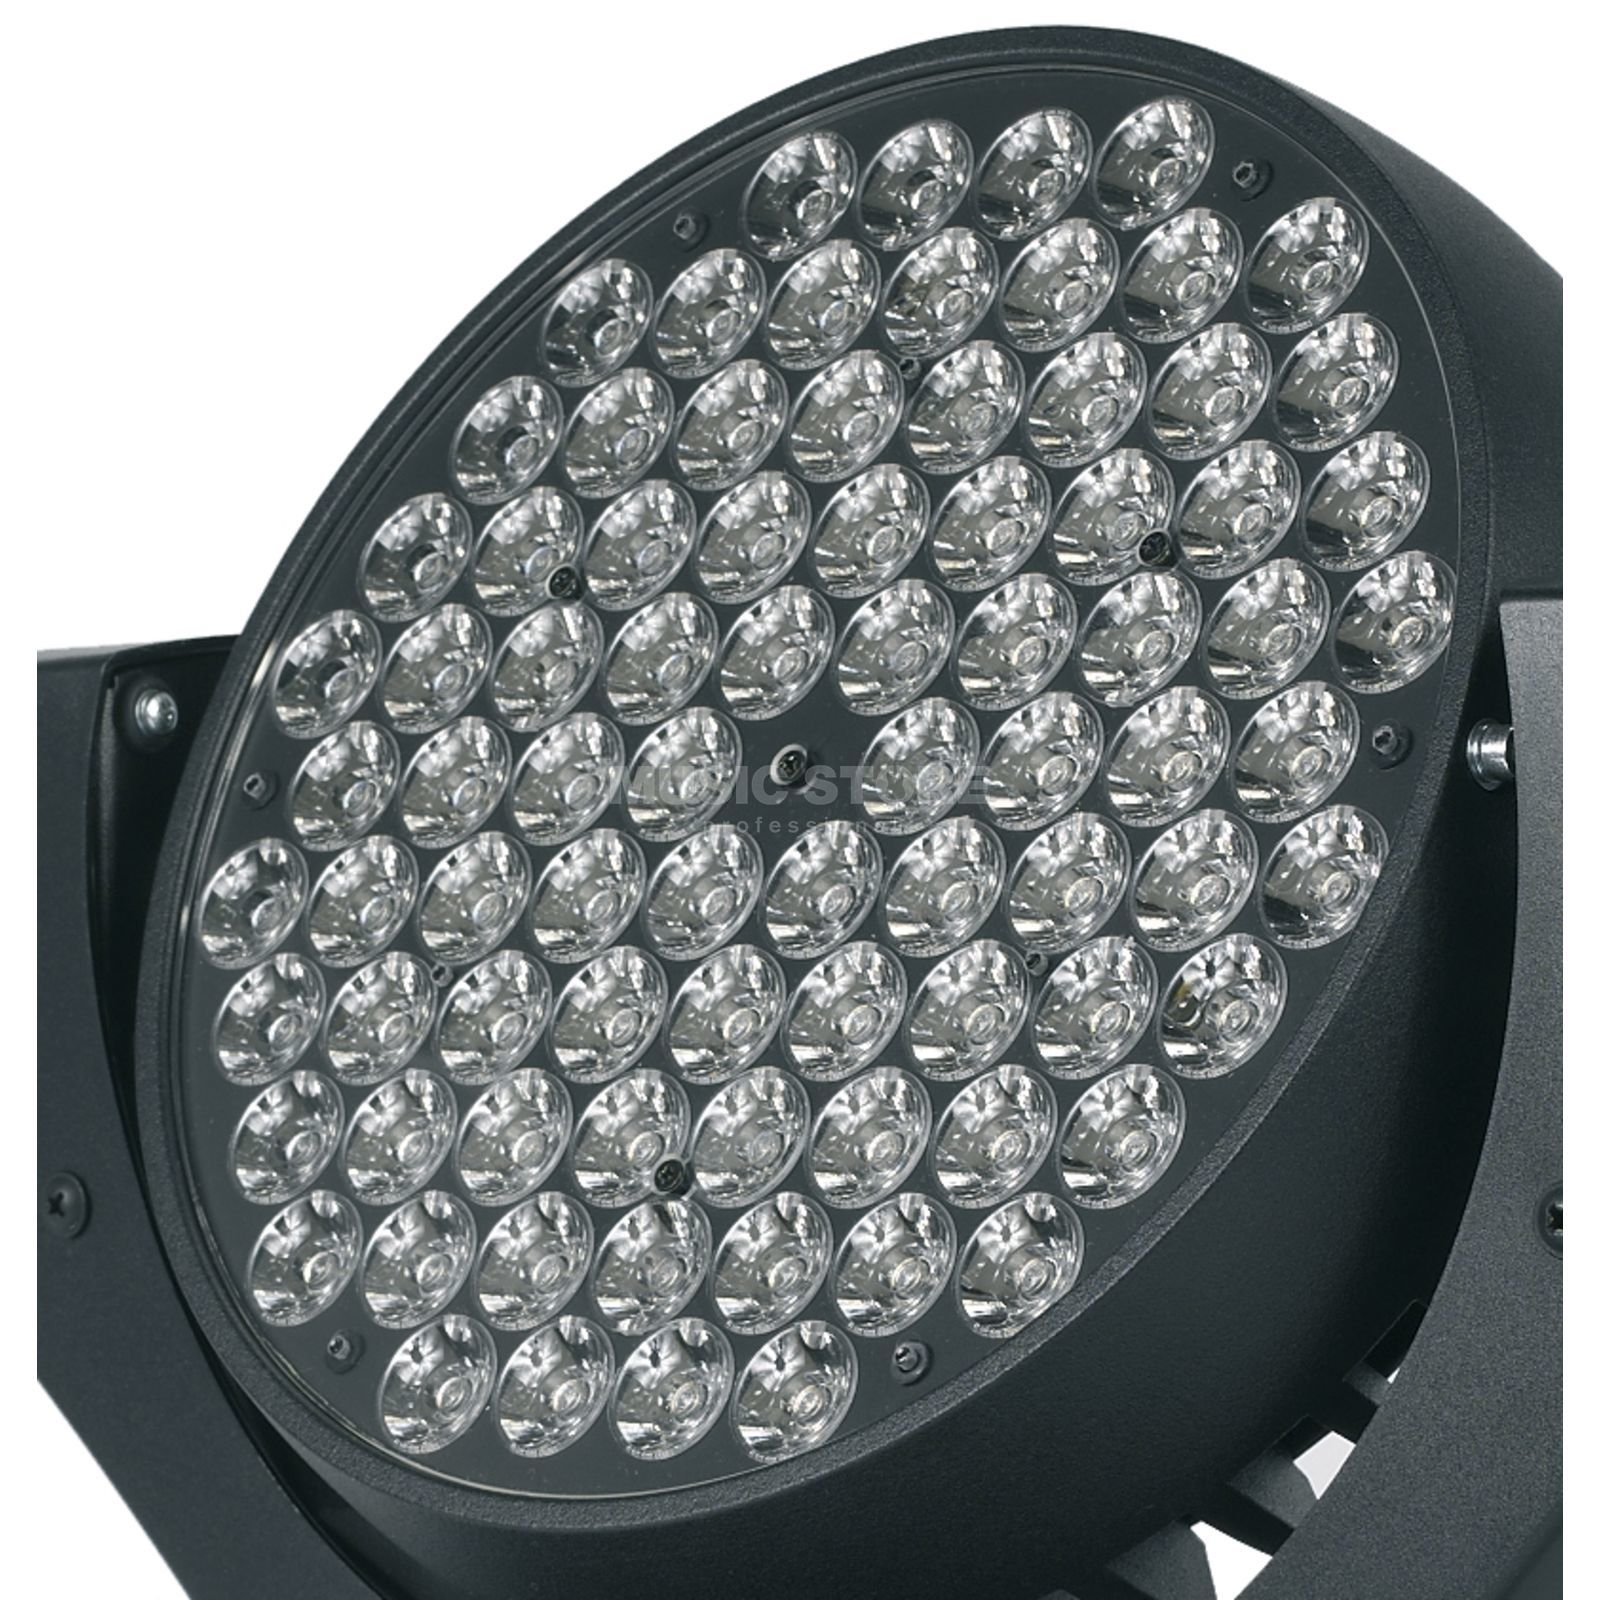 JB-Lighting LED Vary Wechsellinse Produktbild